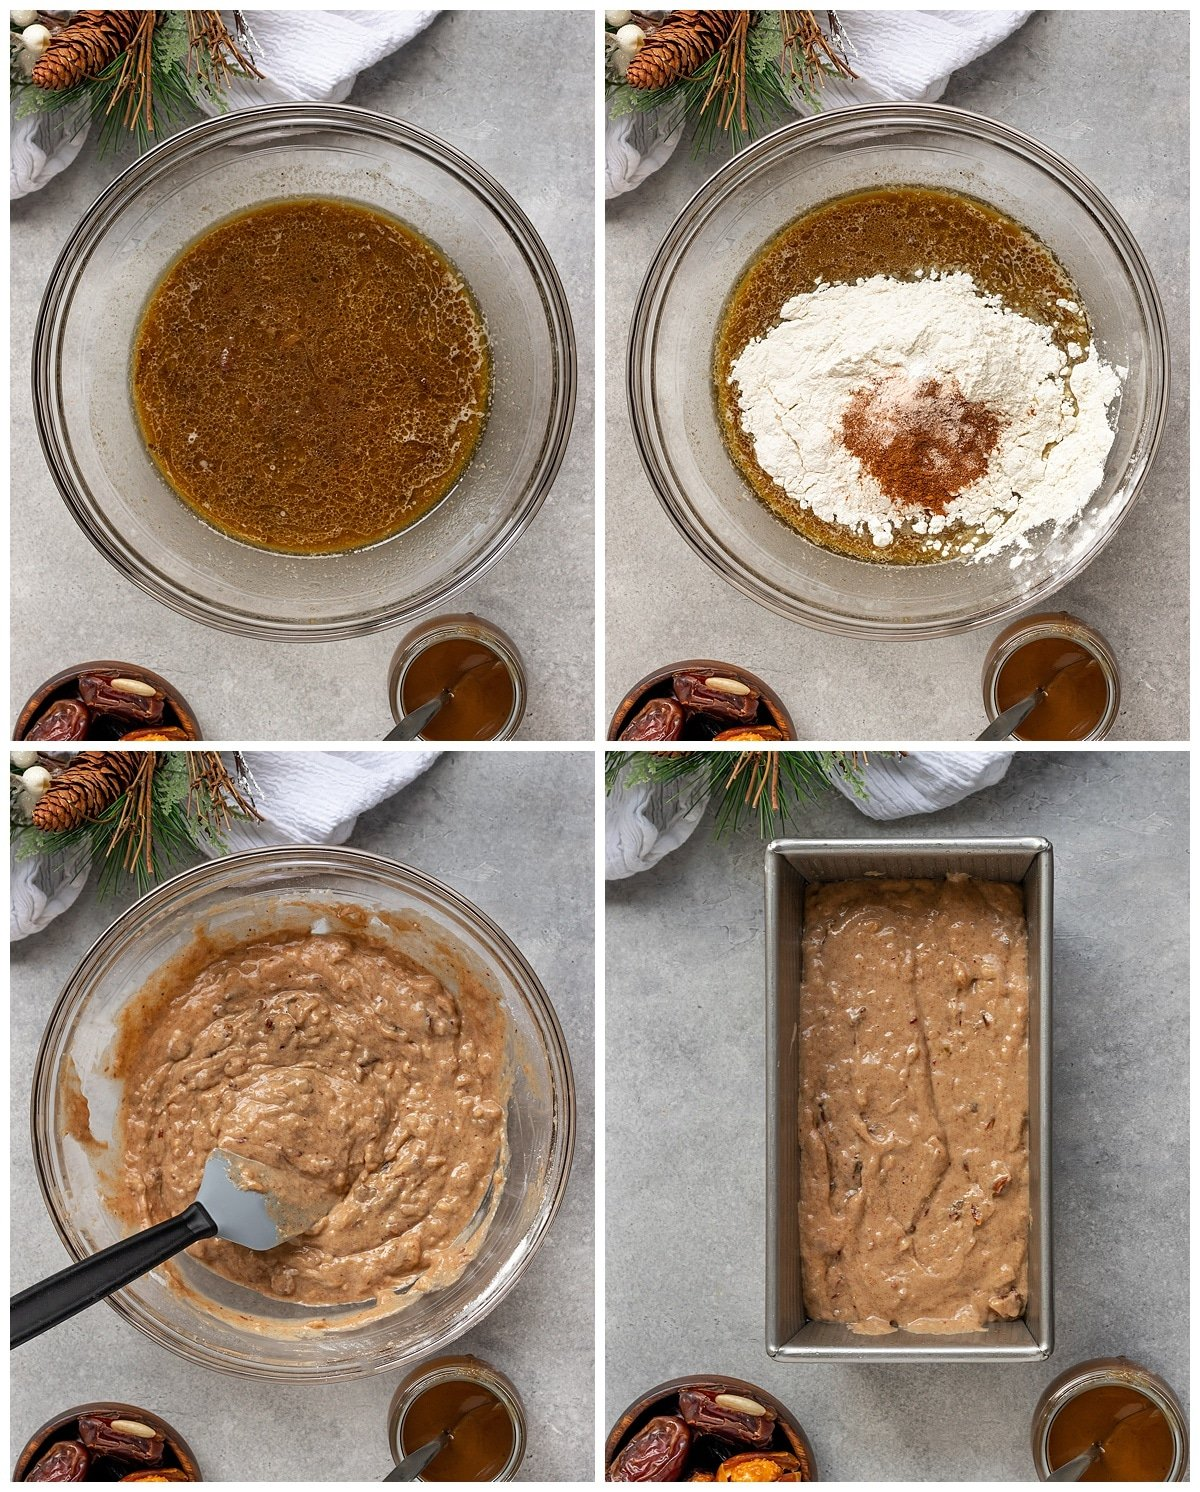 four pictures of ingredients being added to mixing bowl for date cake batter then added to a loaf pan before baking